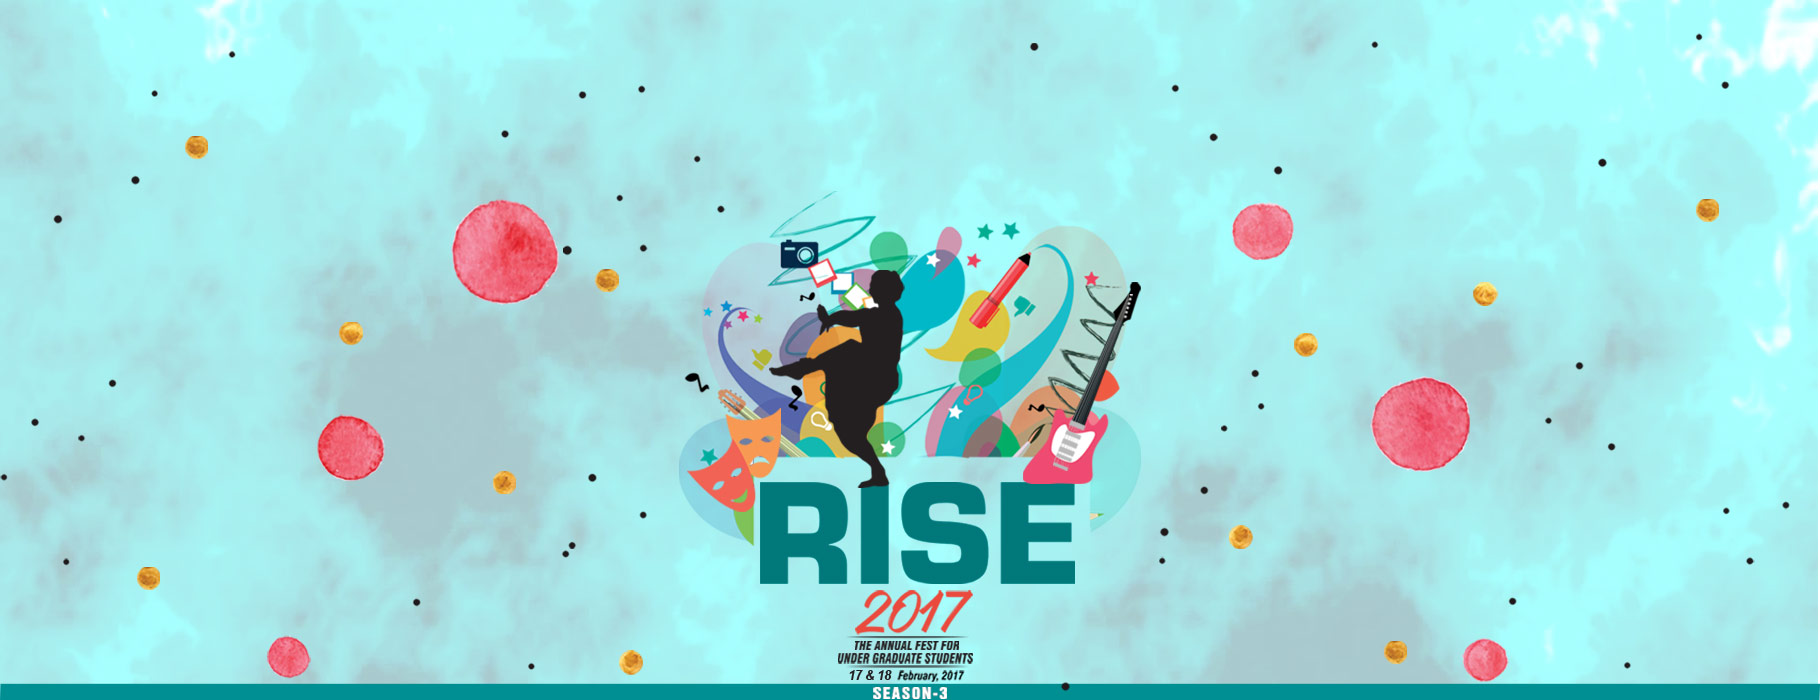 RISE - The Annual Fest